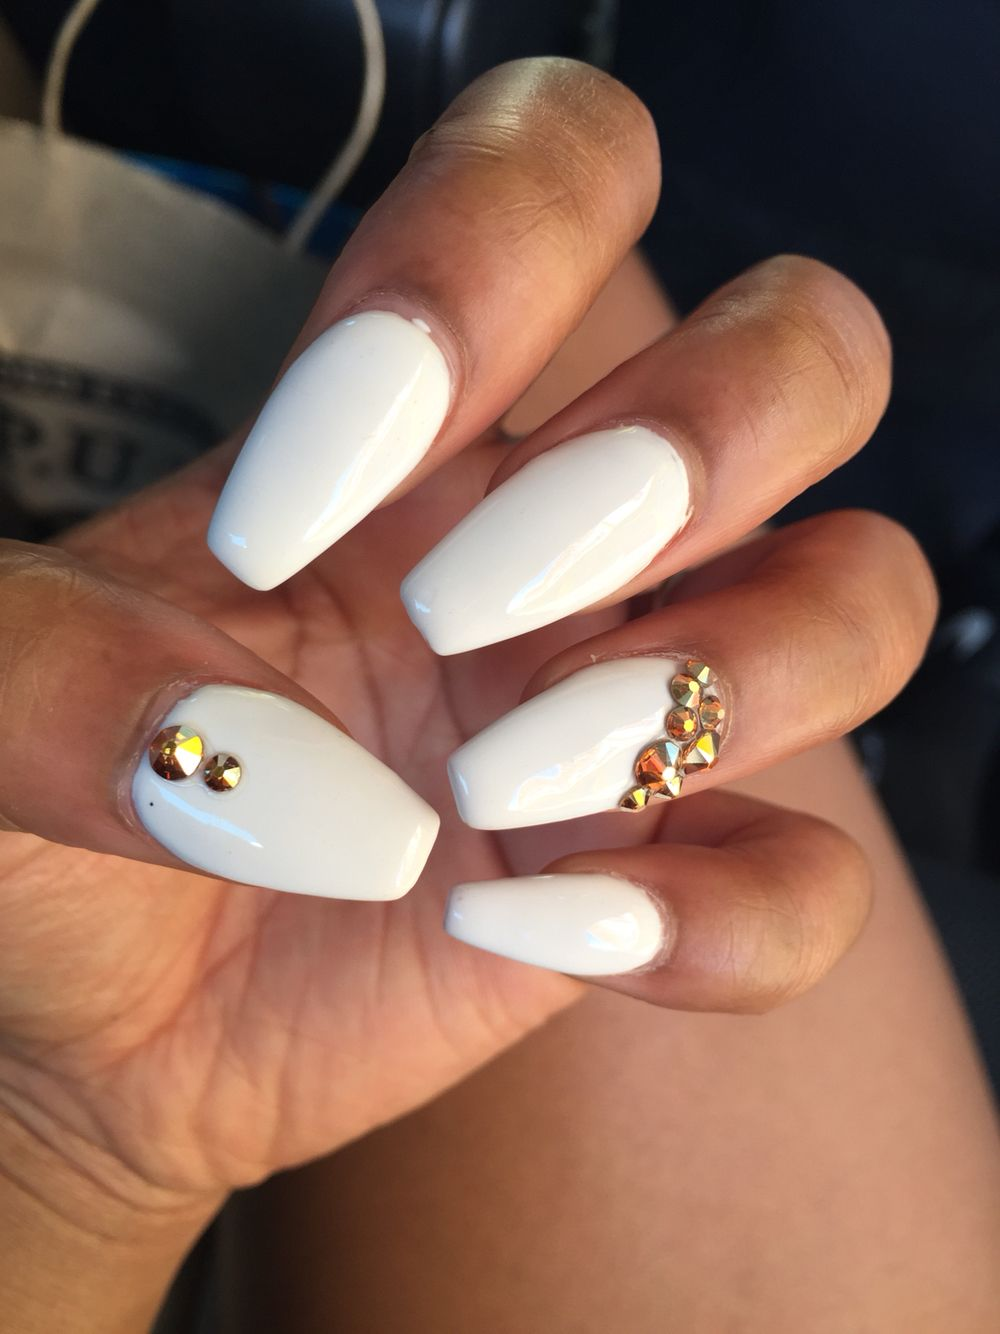 White acrylic coffin nails with gold jewels | Nails | Pinterest ...